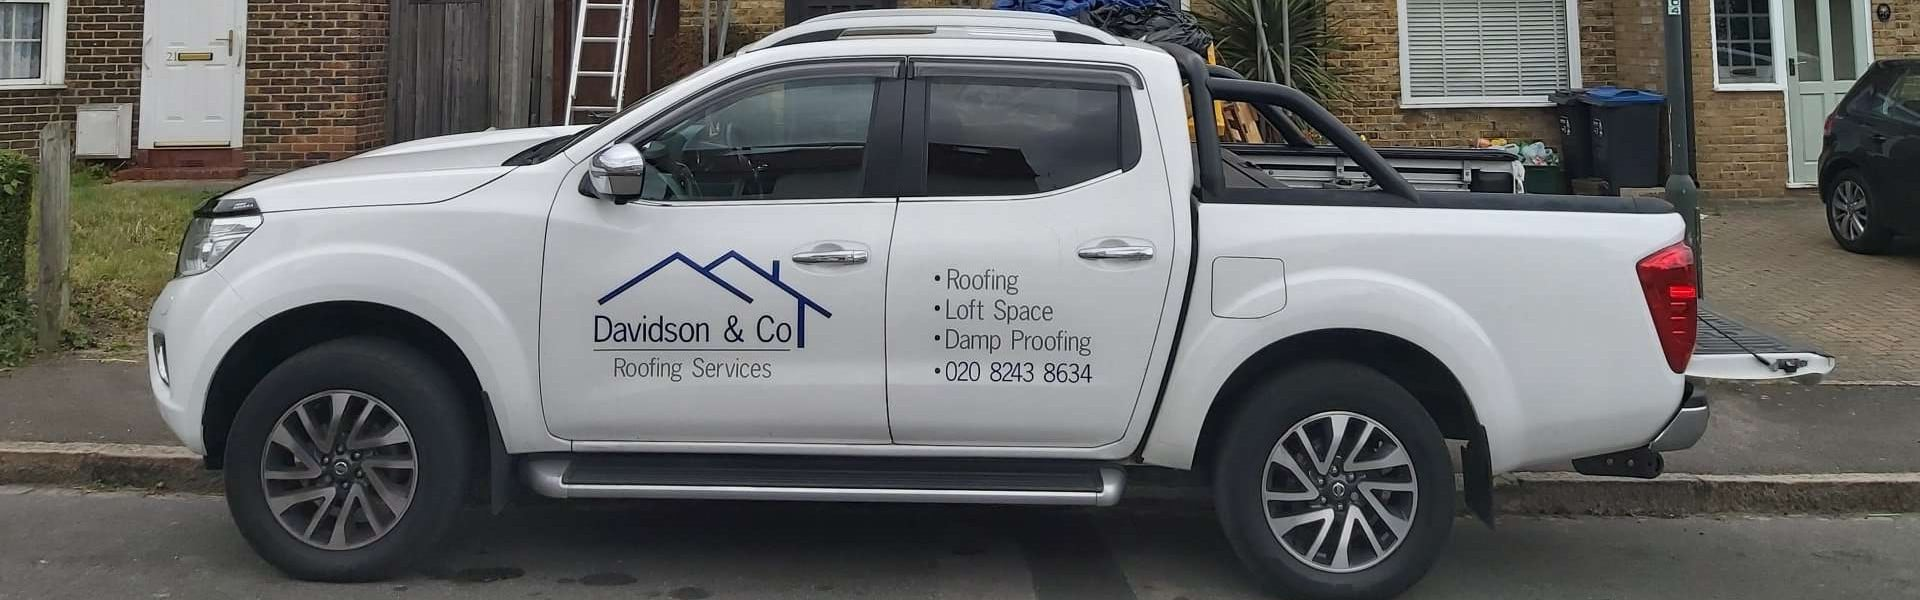 Davidson and Co Roofing